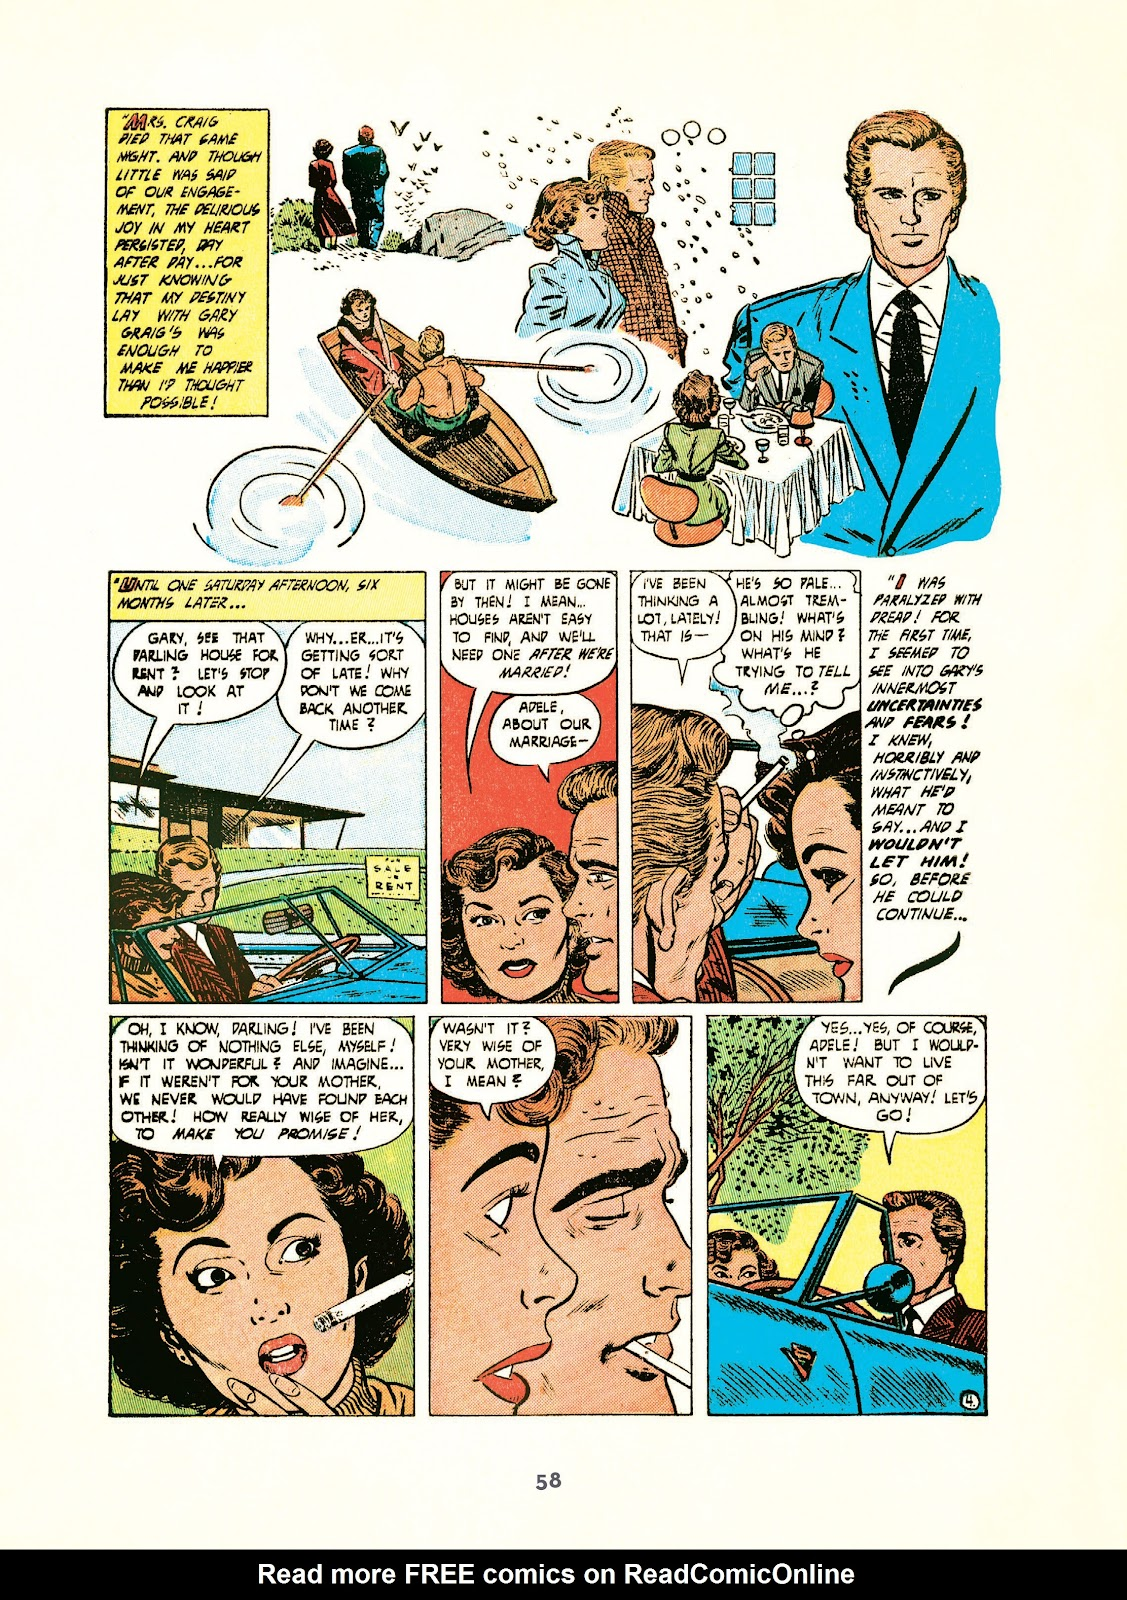 Read online Setting the Standard: Comics by Alex Toth 1952-1954 comic -  Issue # TPB (Part 1) - 57